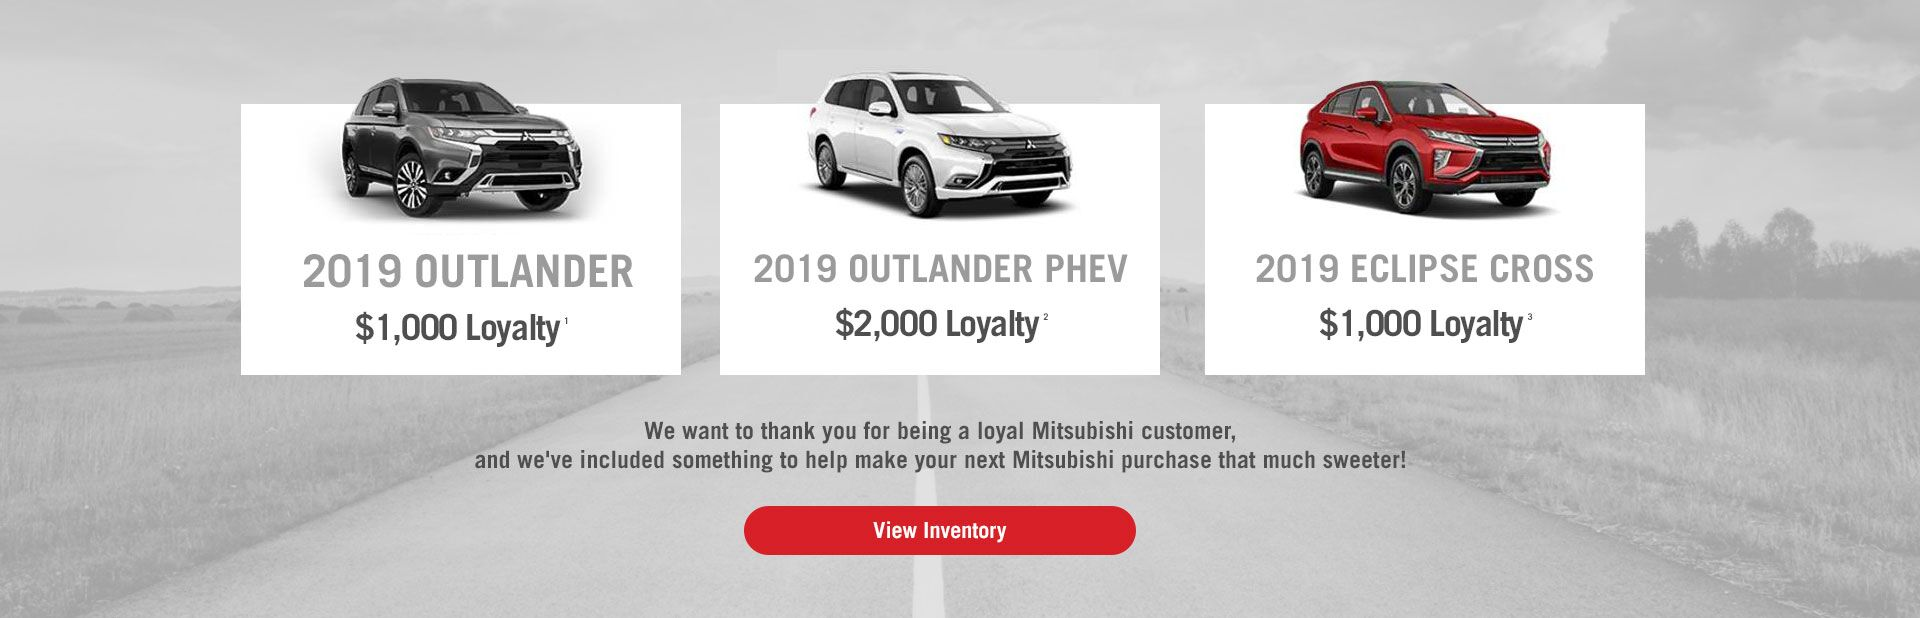 Loyalty Rebate for Crossovers